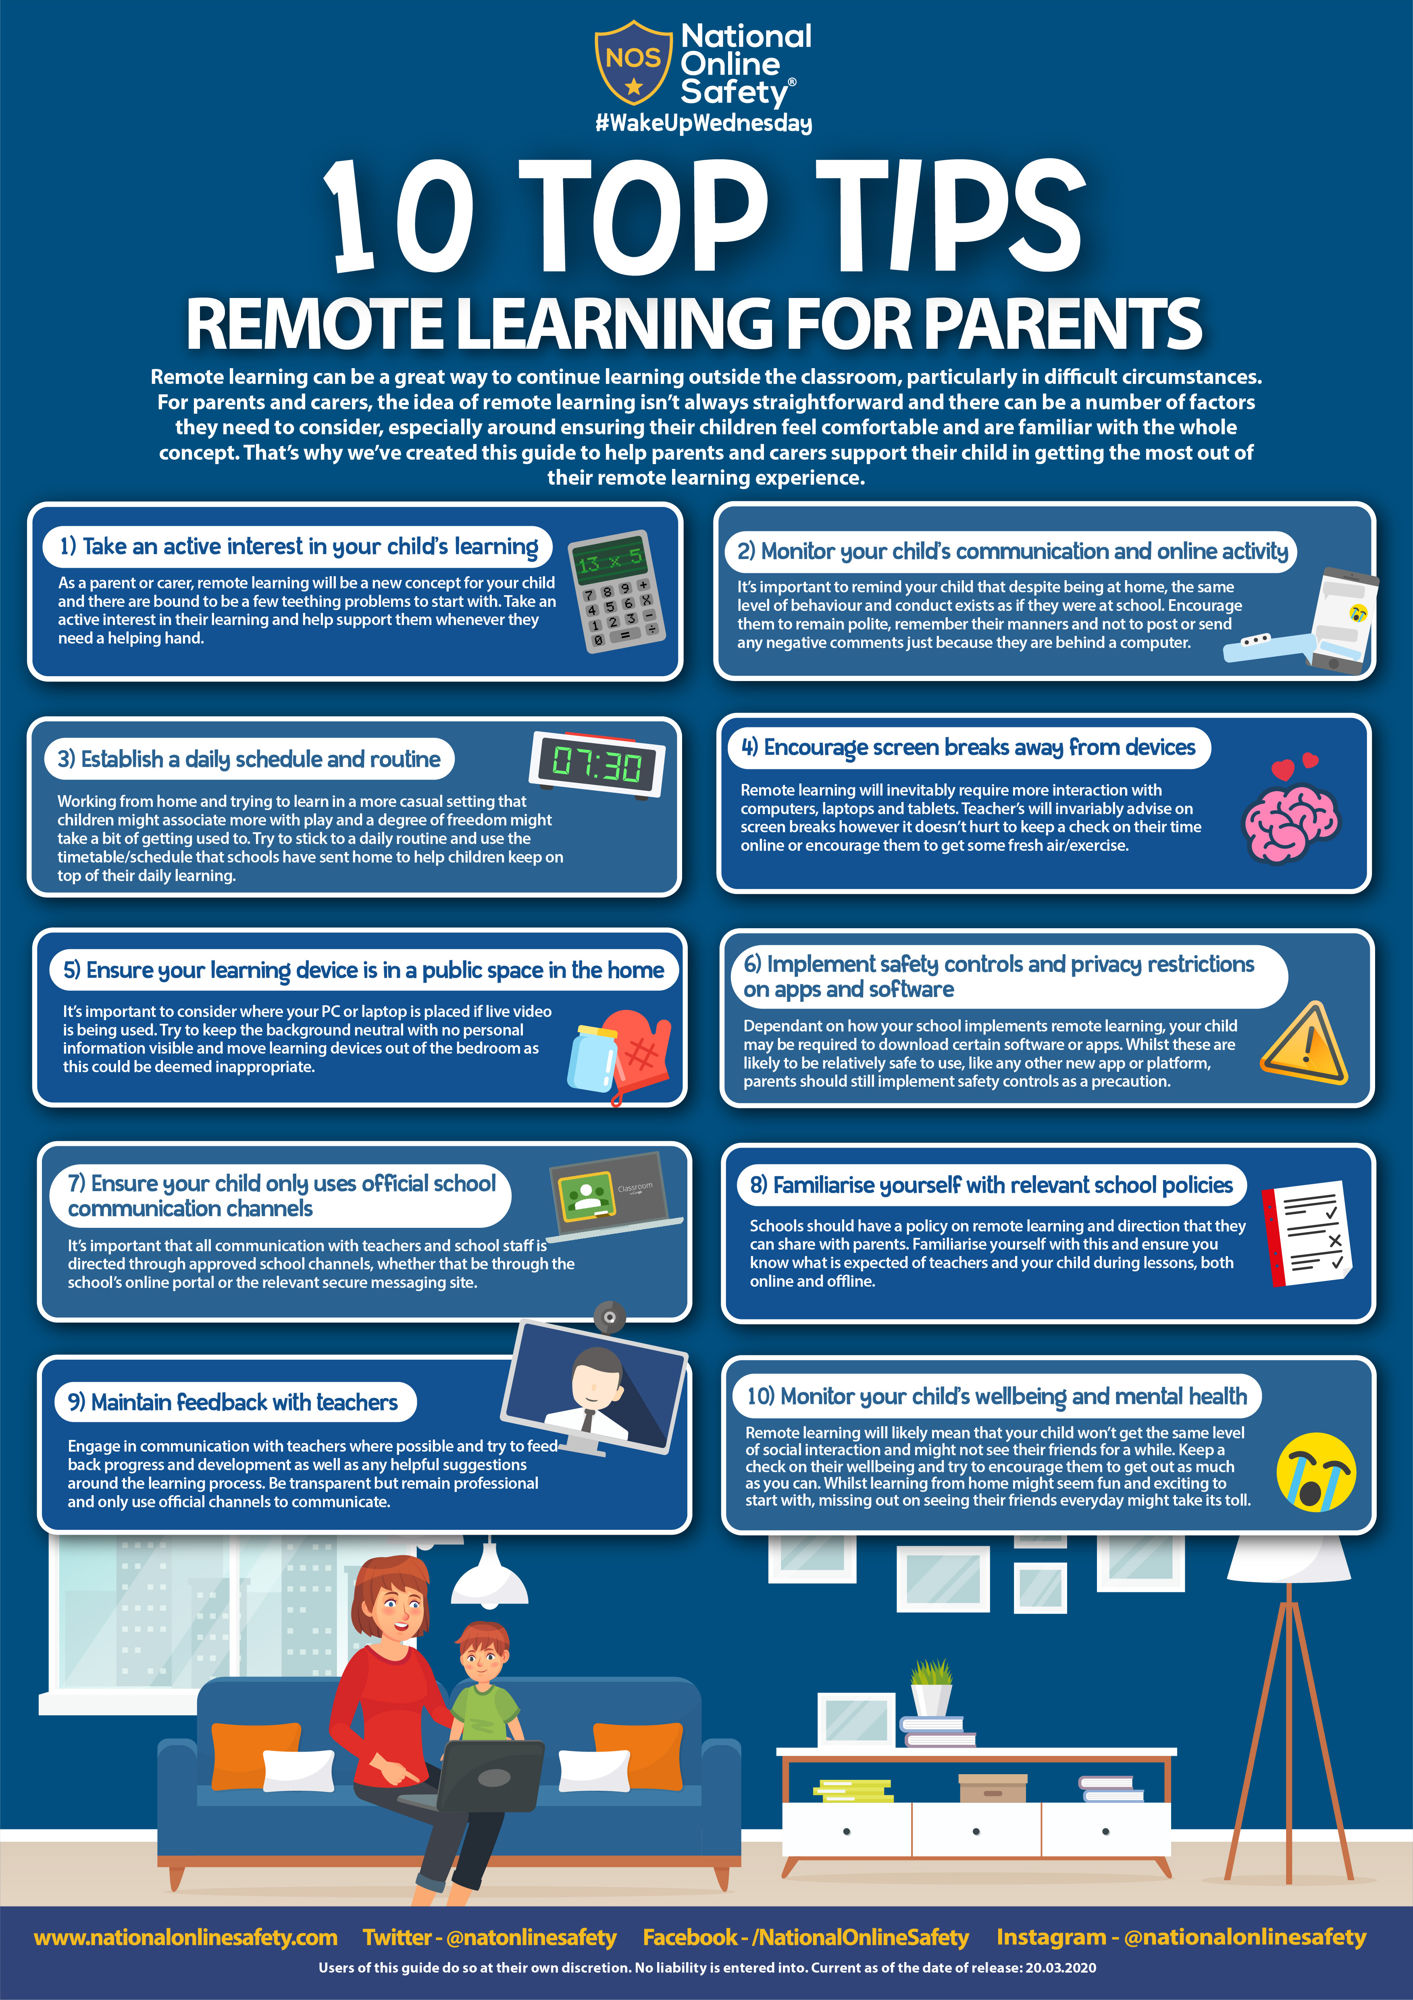 Top tips remote learning for parents